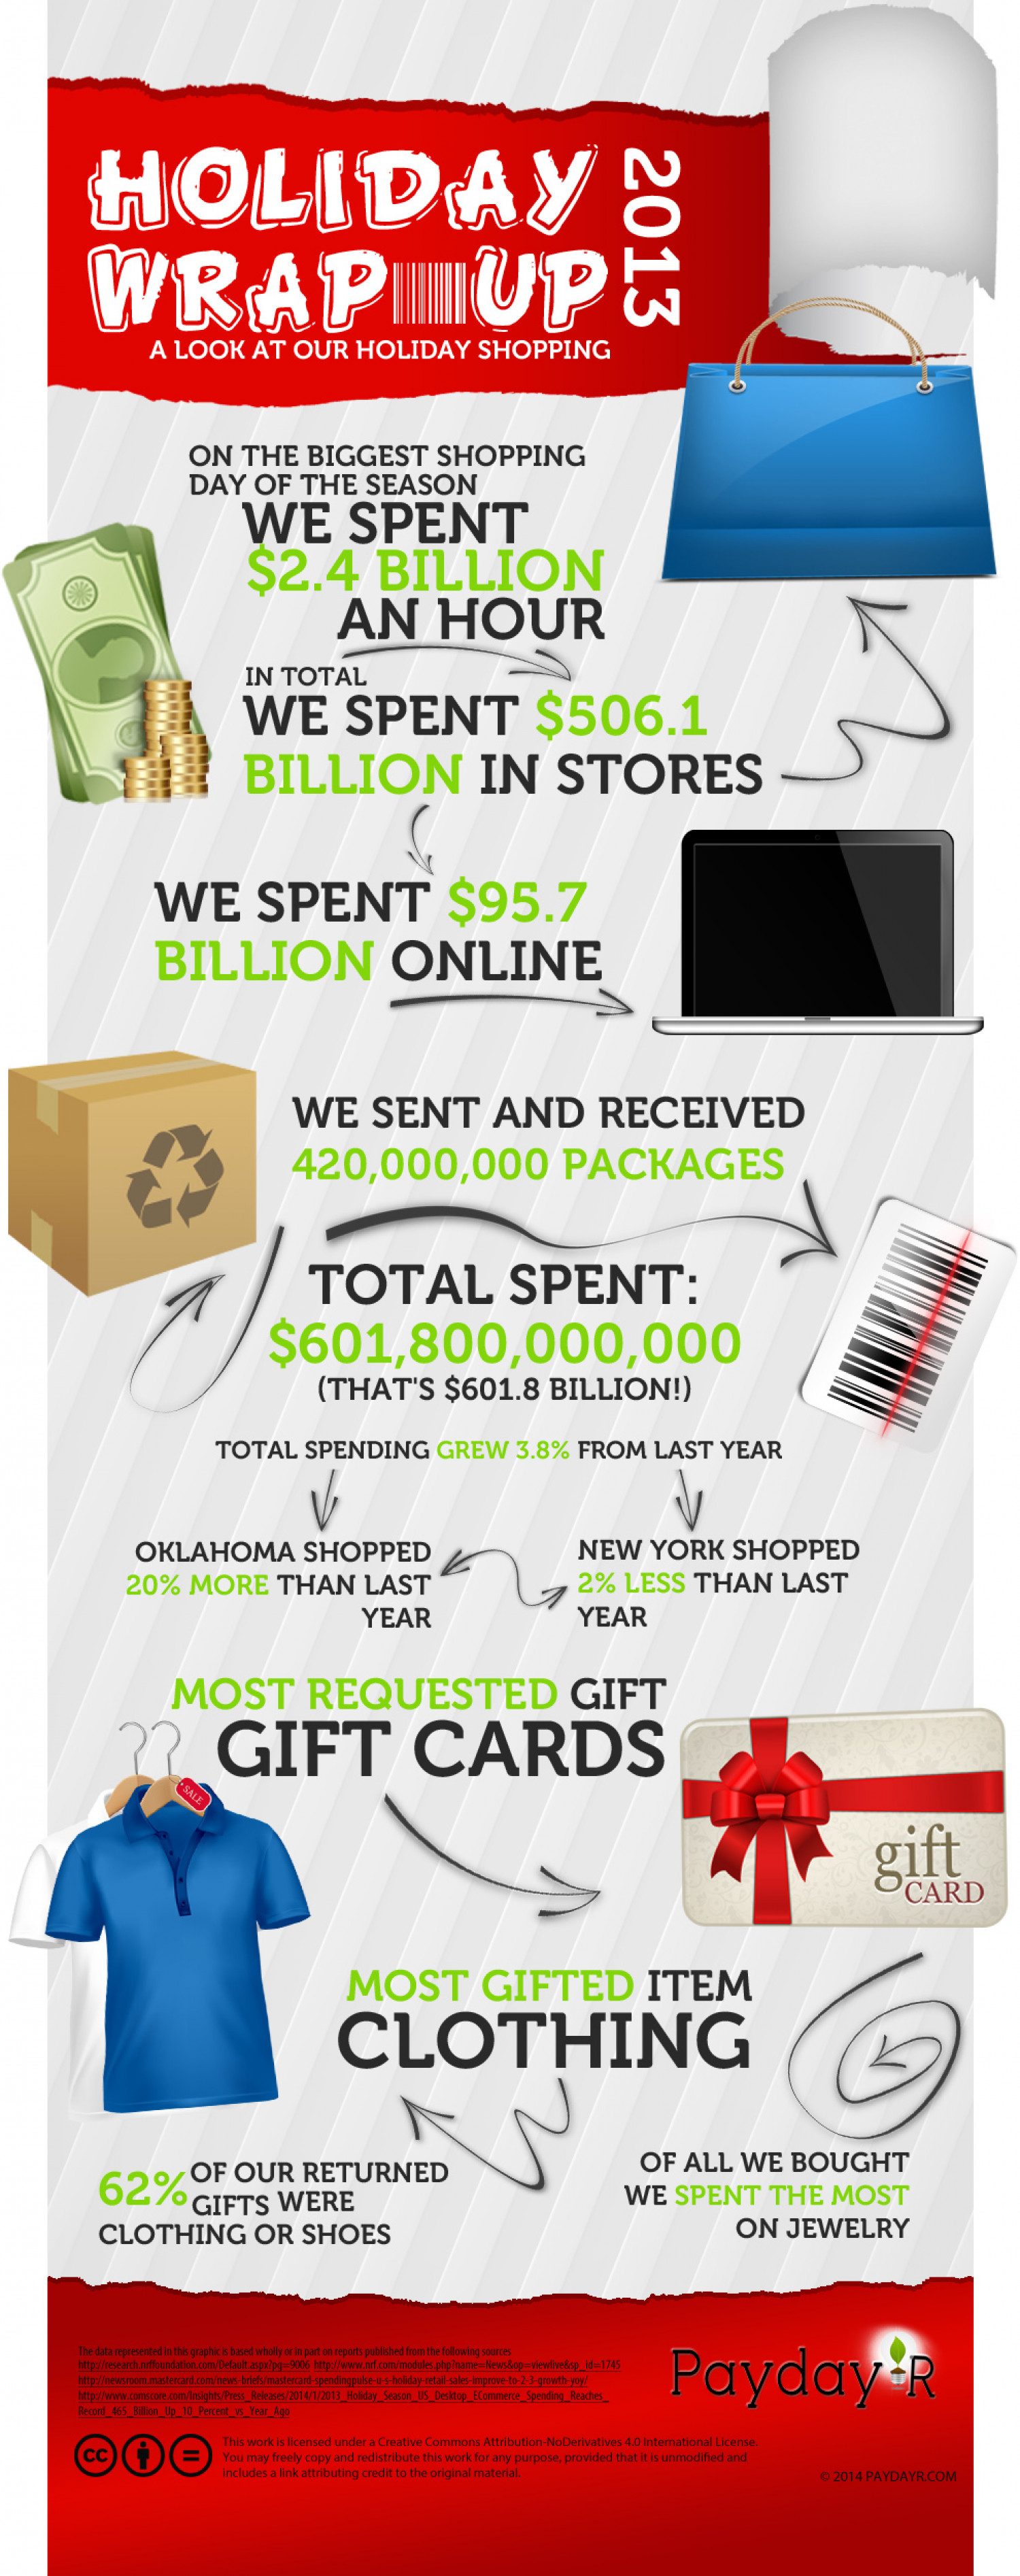 Holiday Wrap up 2013 Infographic